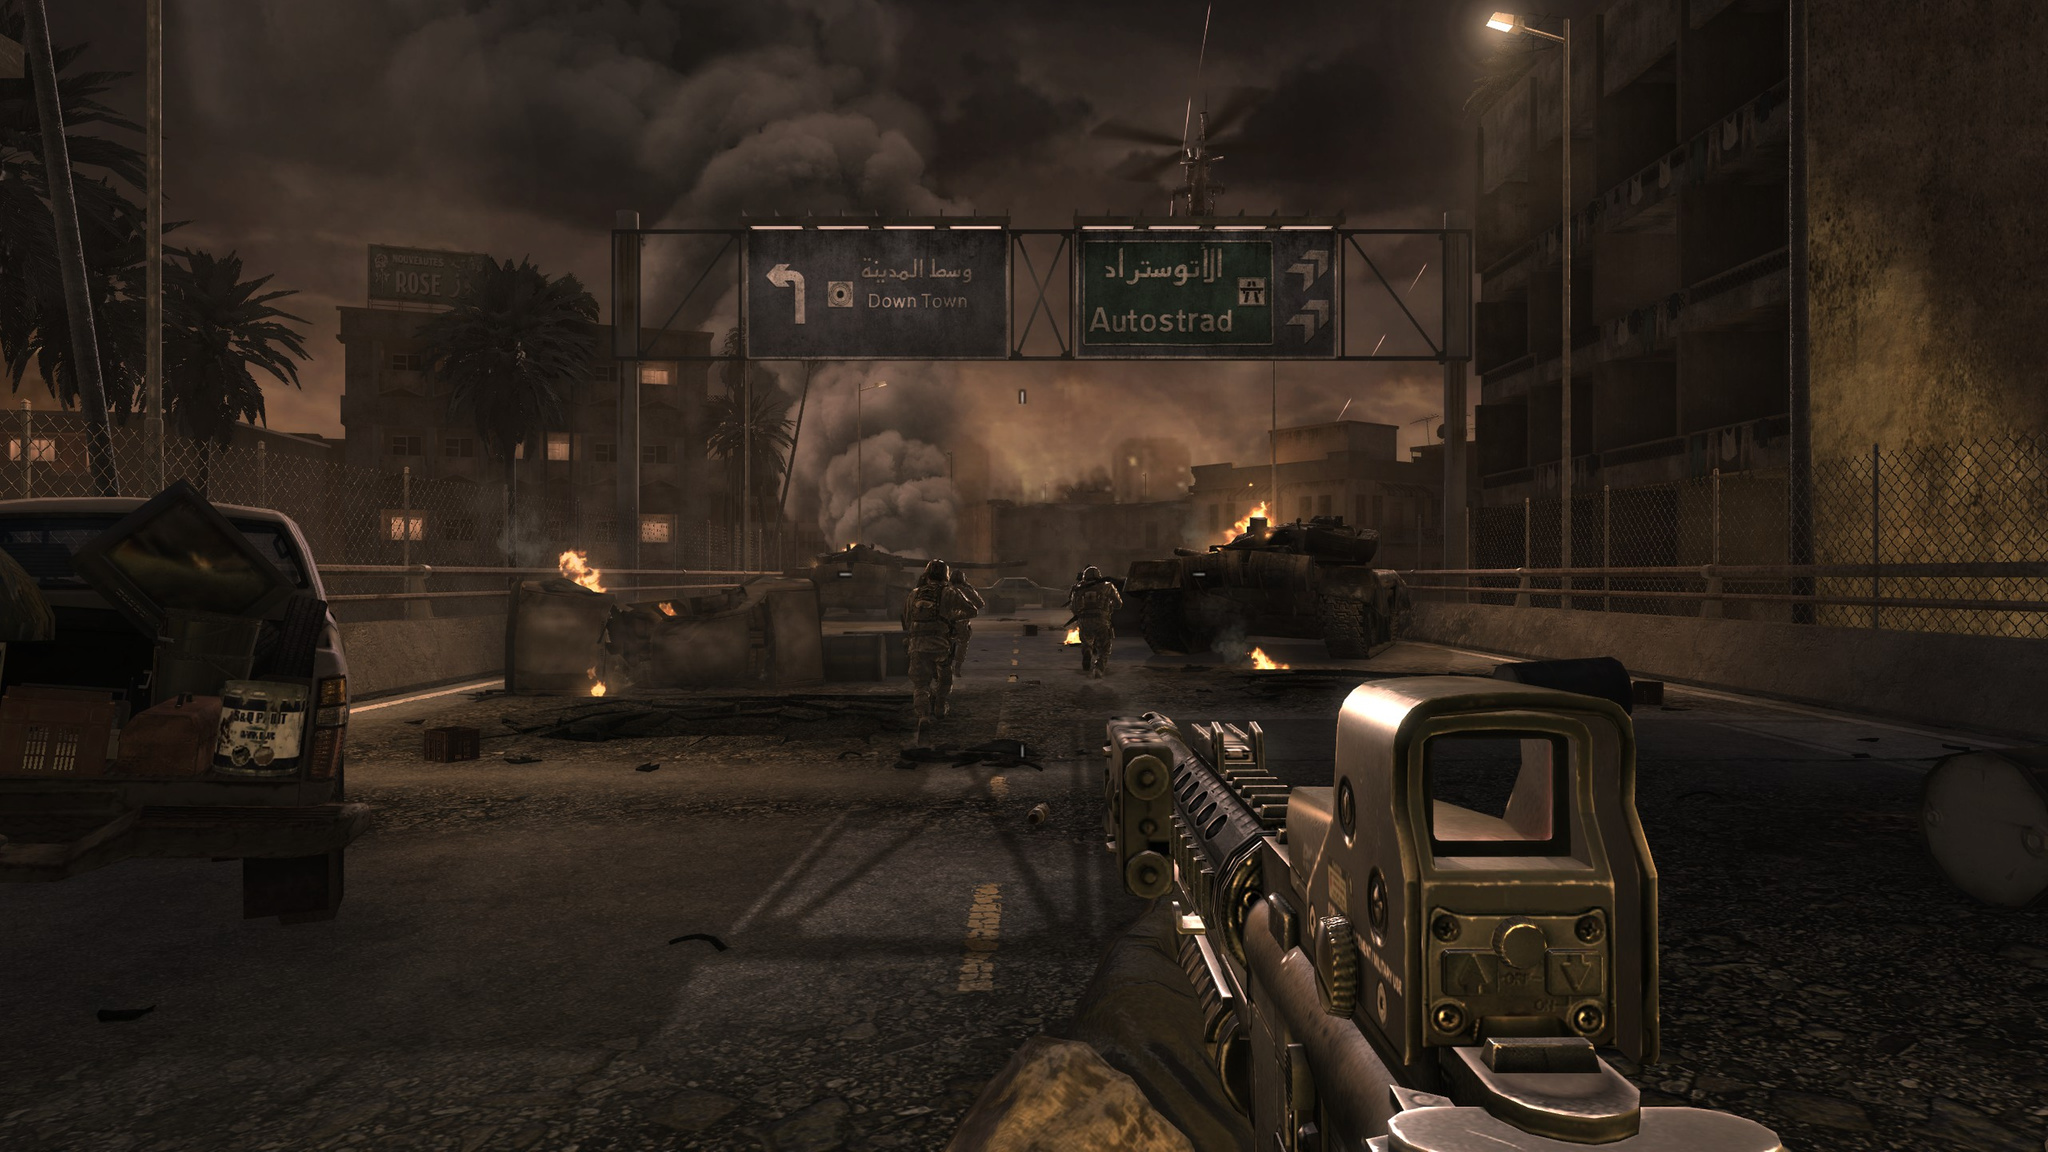 Call of Duty 4: Modern Warfare review   336GameReviews